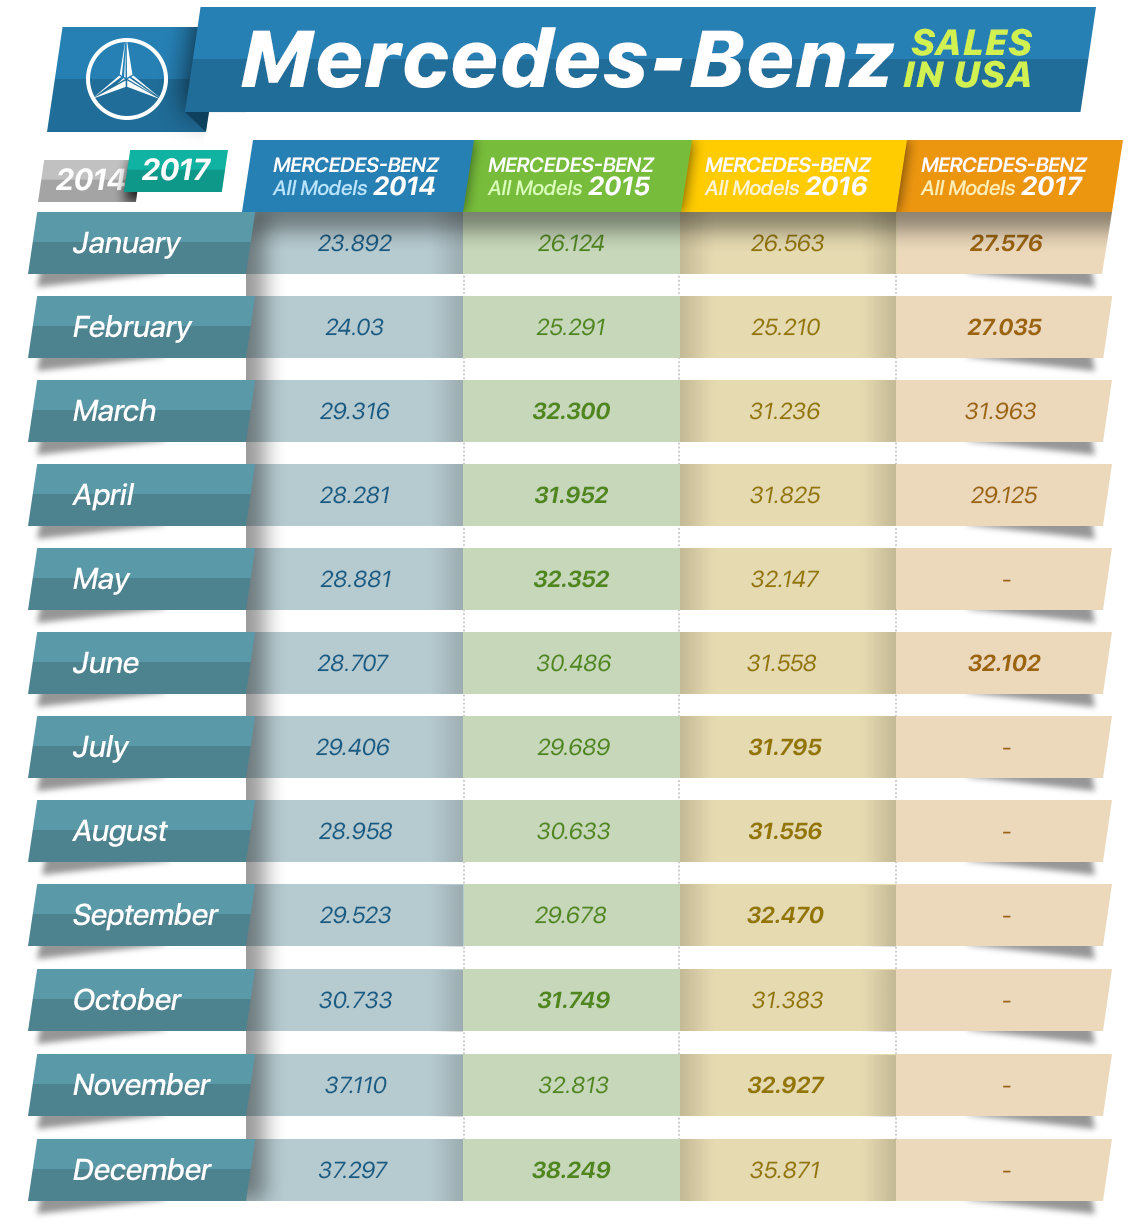 Mercedes benz sales in usa autoxloo car dealer website for Mercedes benz official site usa